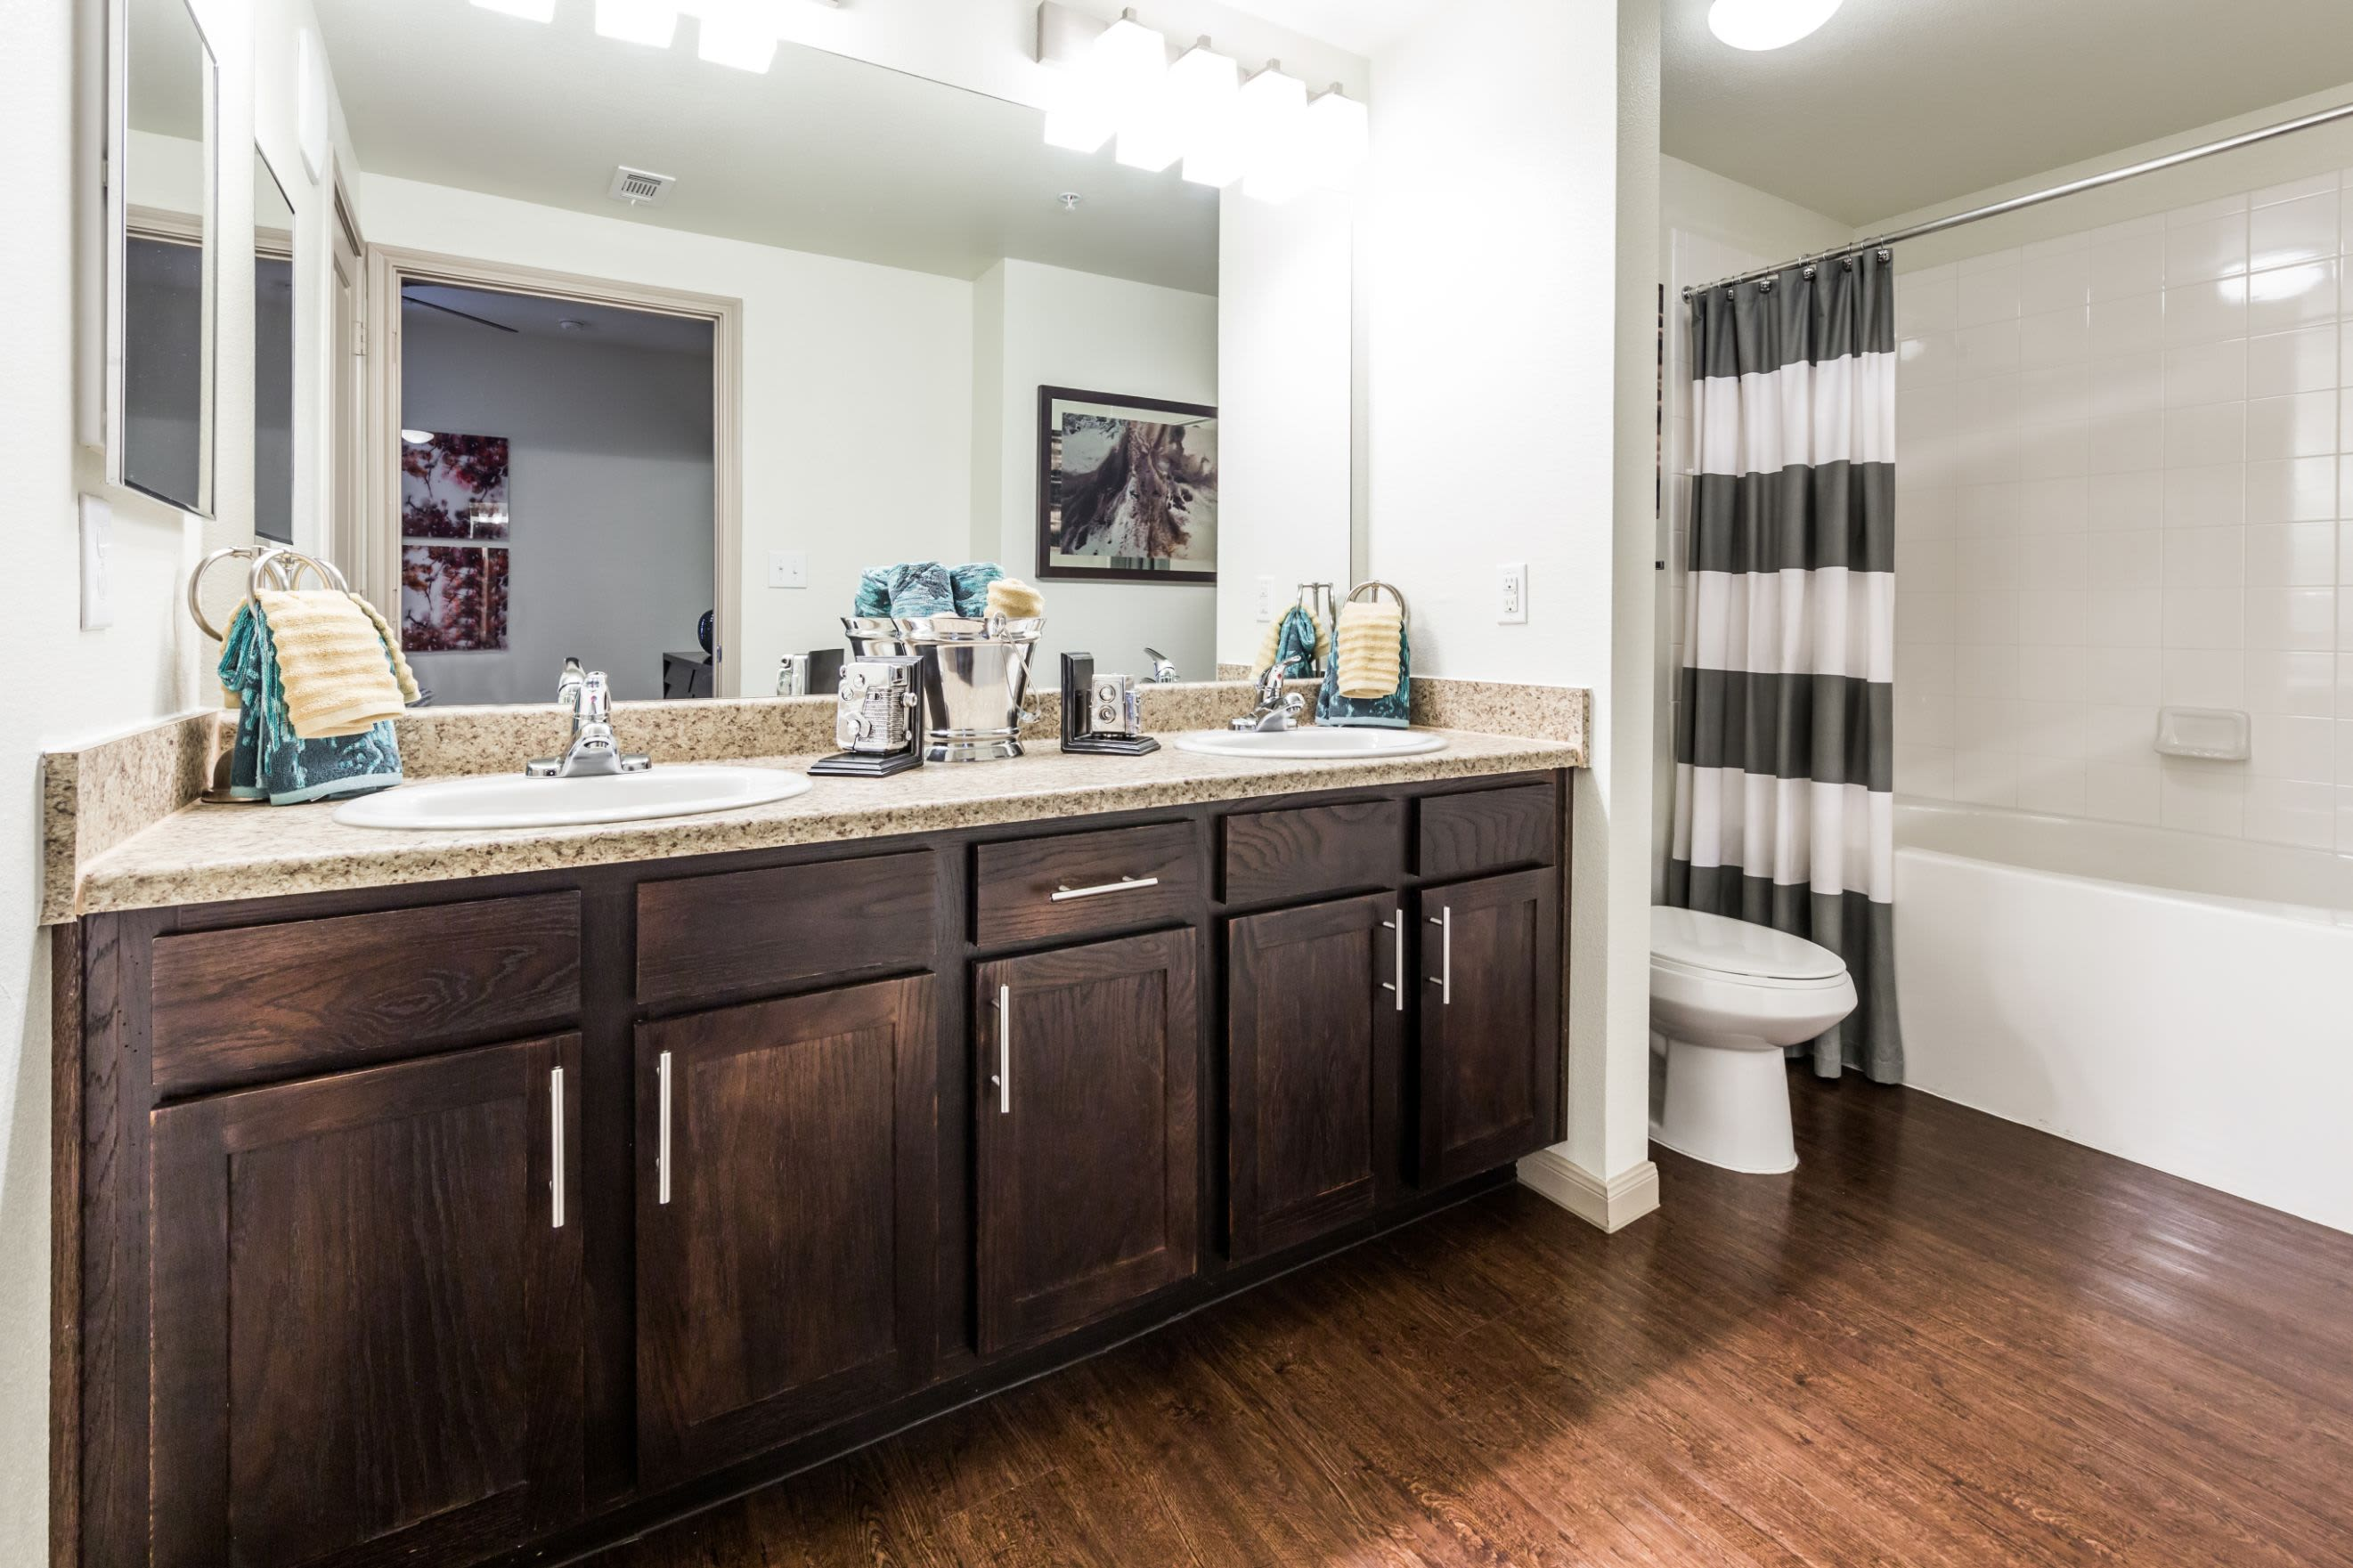 Bathroom with double sinks at Marquis on Lakeline in Cedar Park, Texas